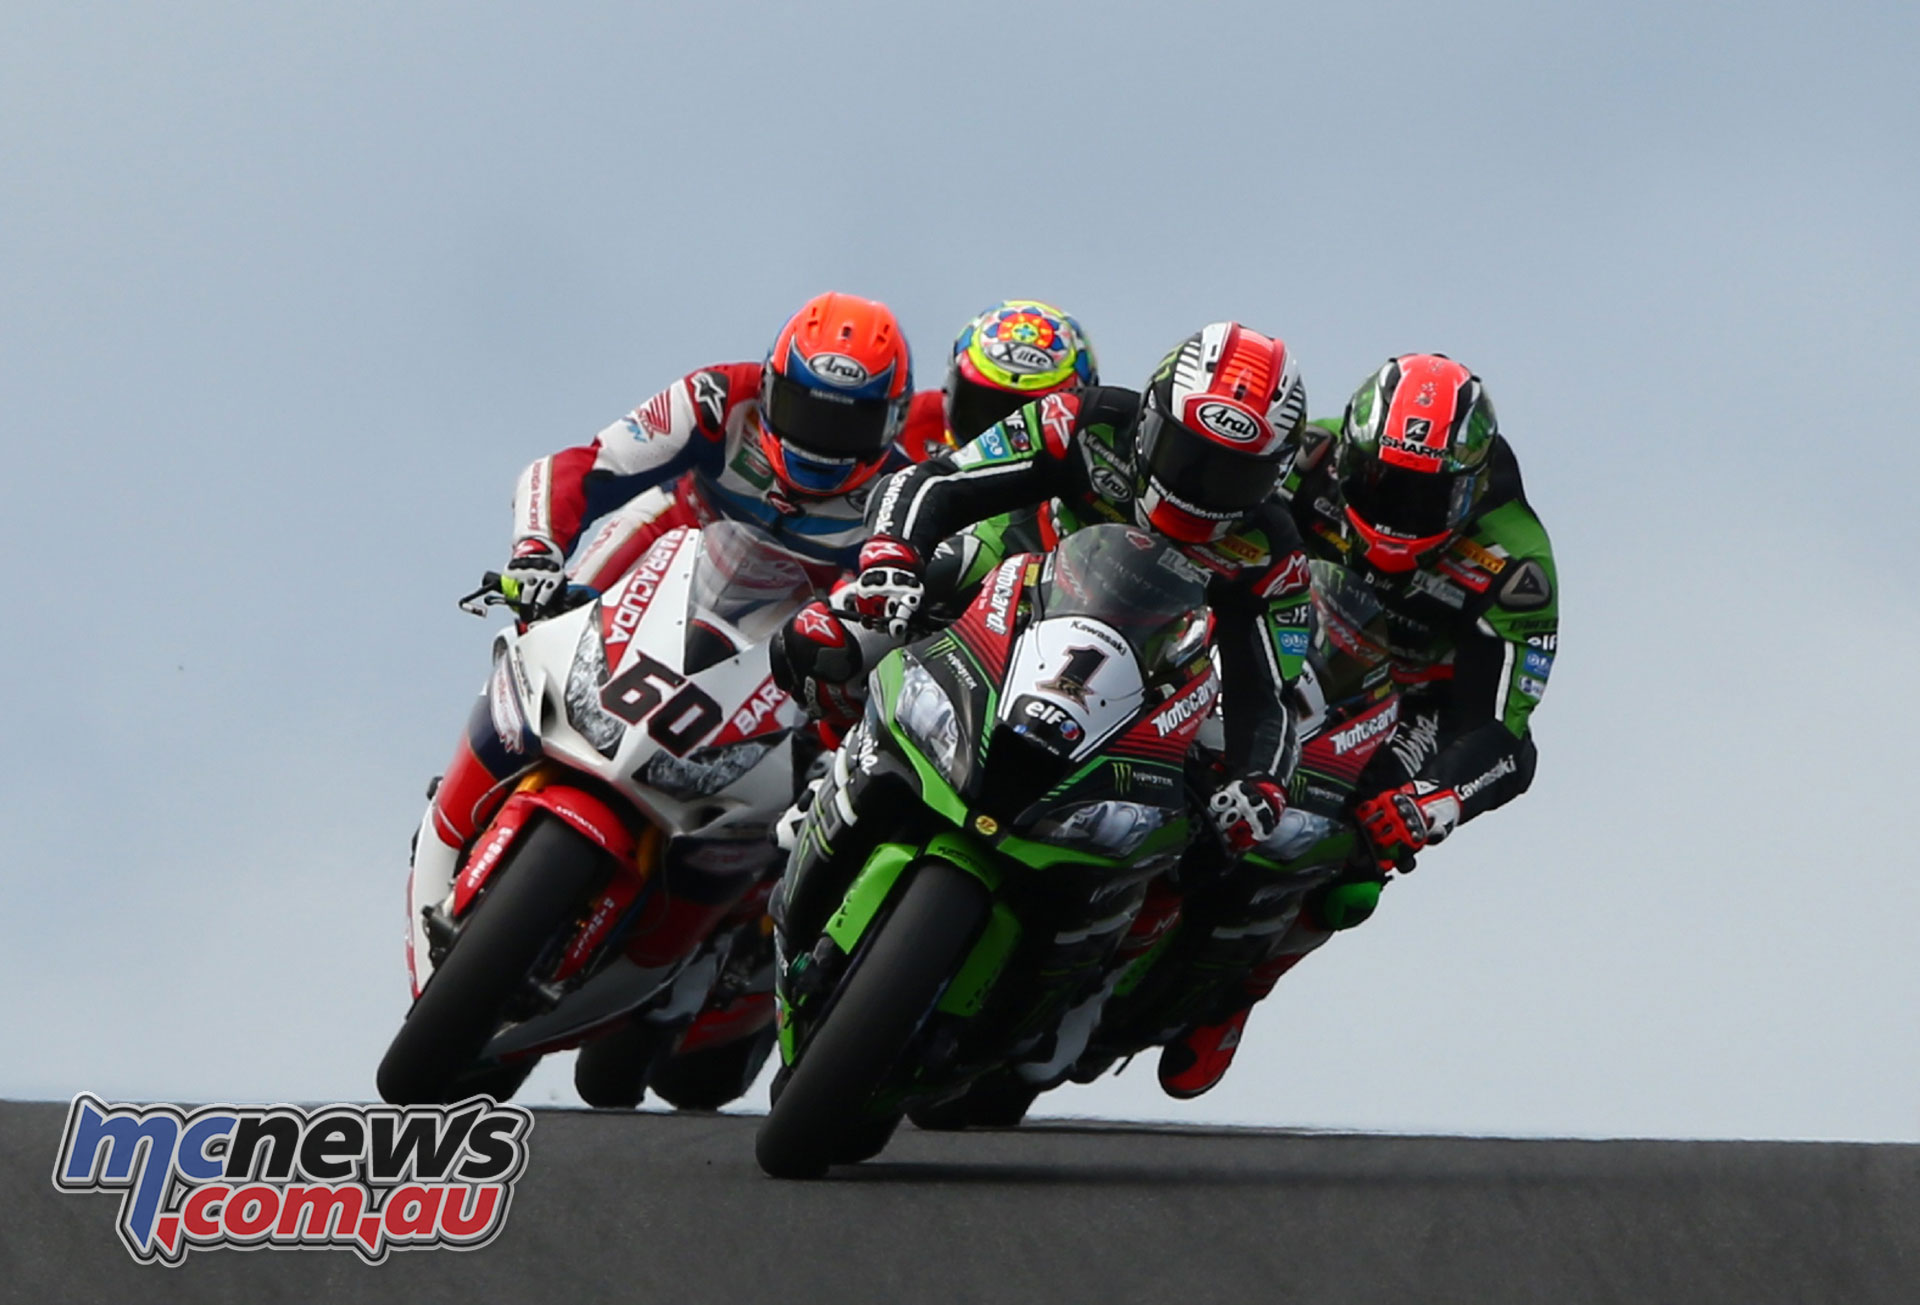 Action from Phillip Island WSBK.